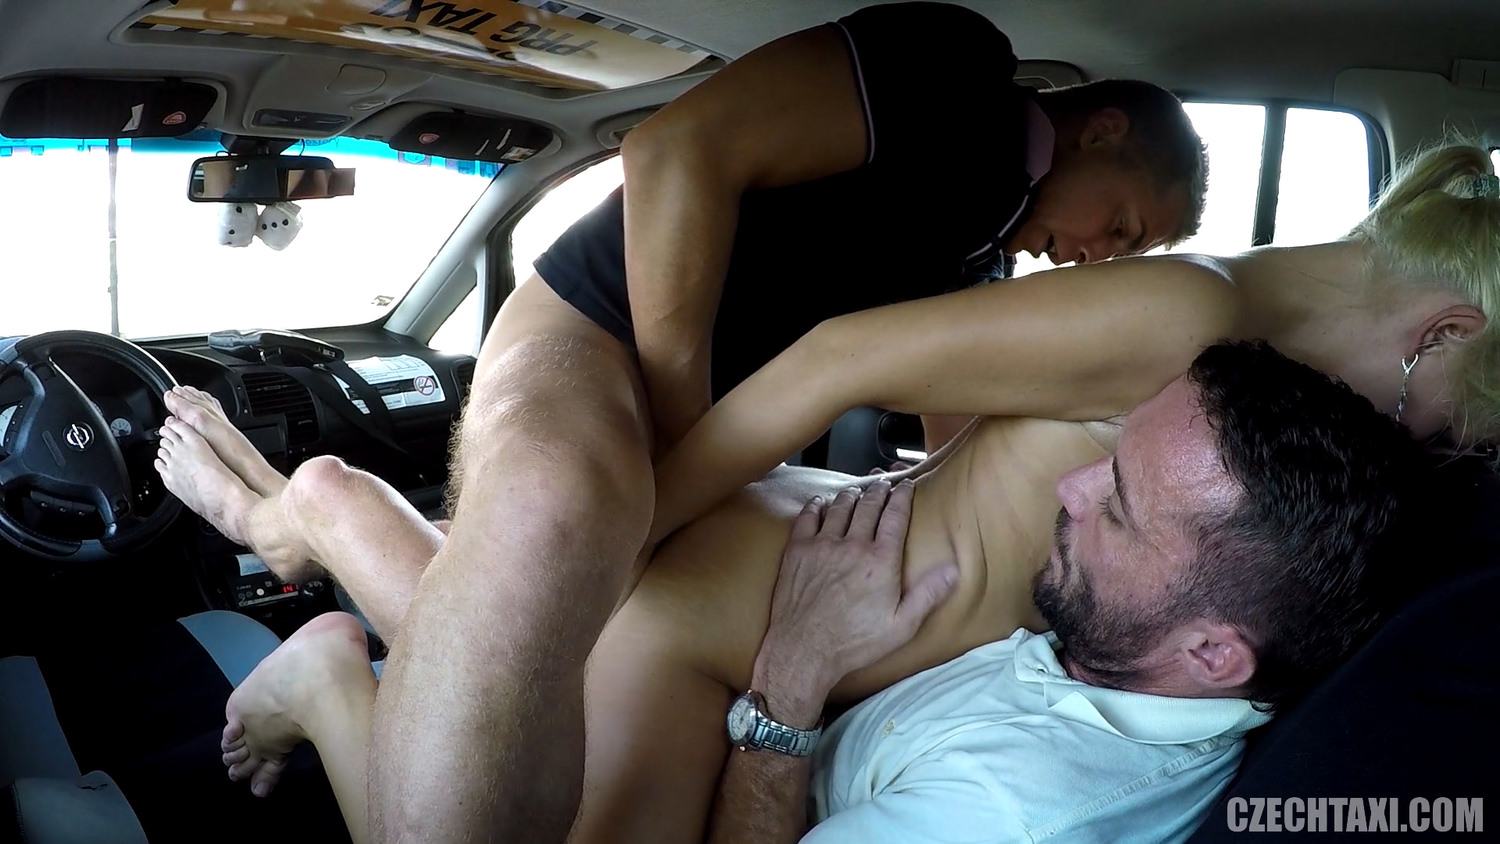 Dp Threesome I Taxi Cab, Fri Trekantsex Dp Hd Porn 40-9188